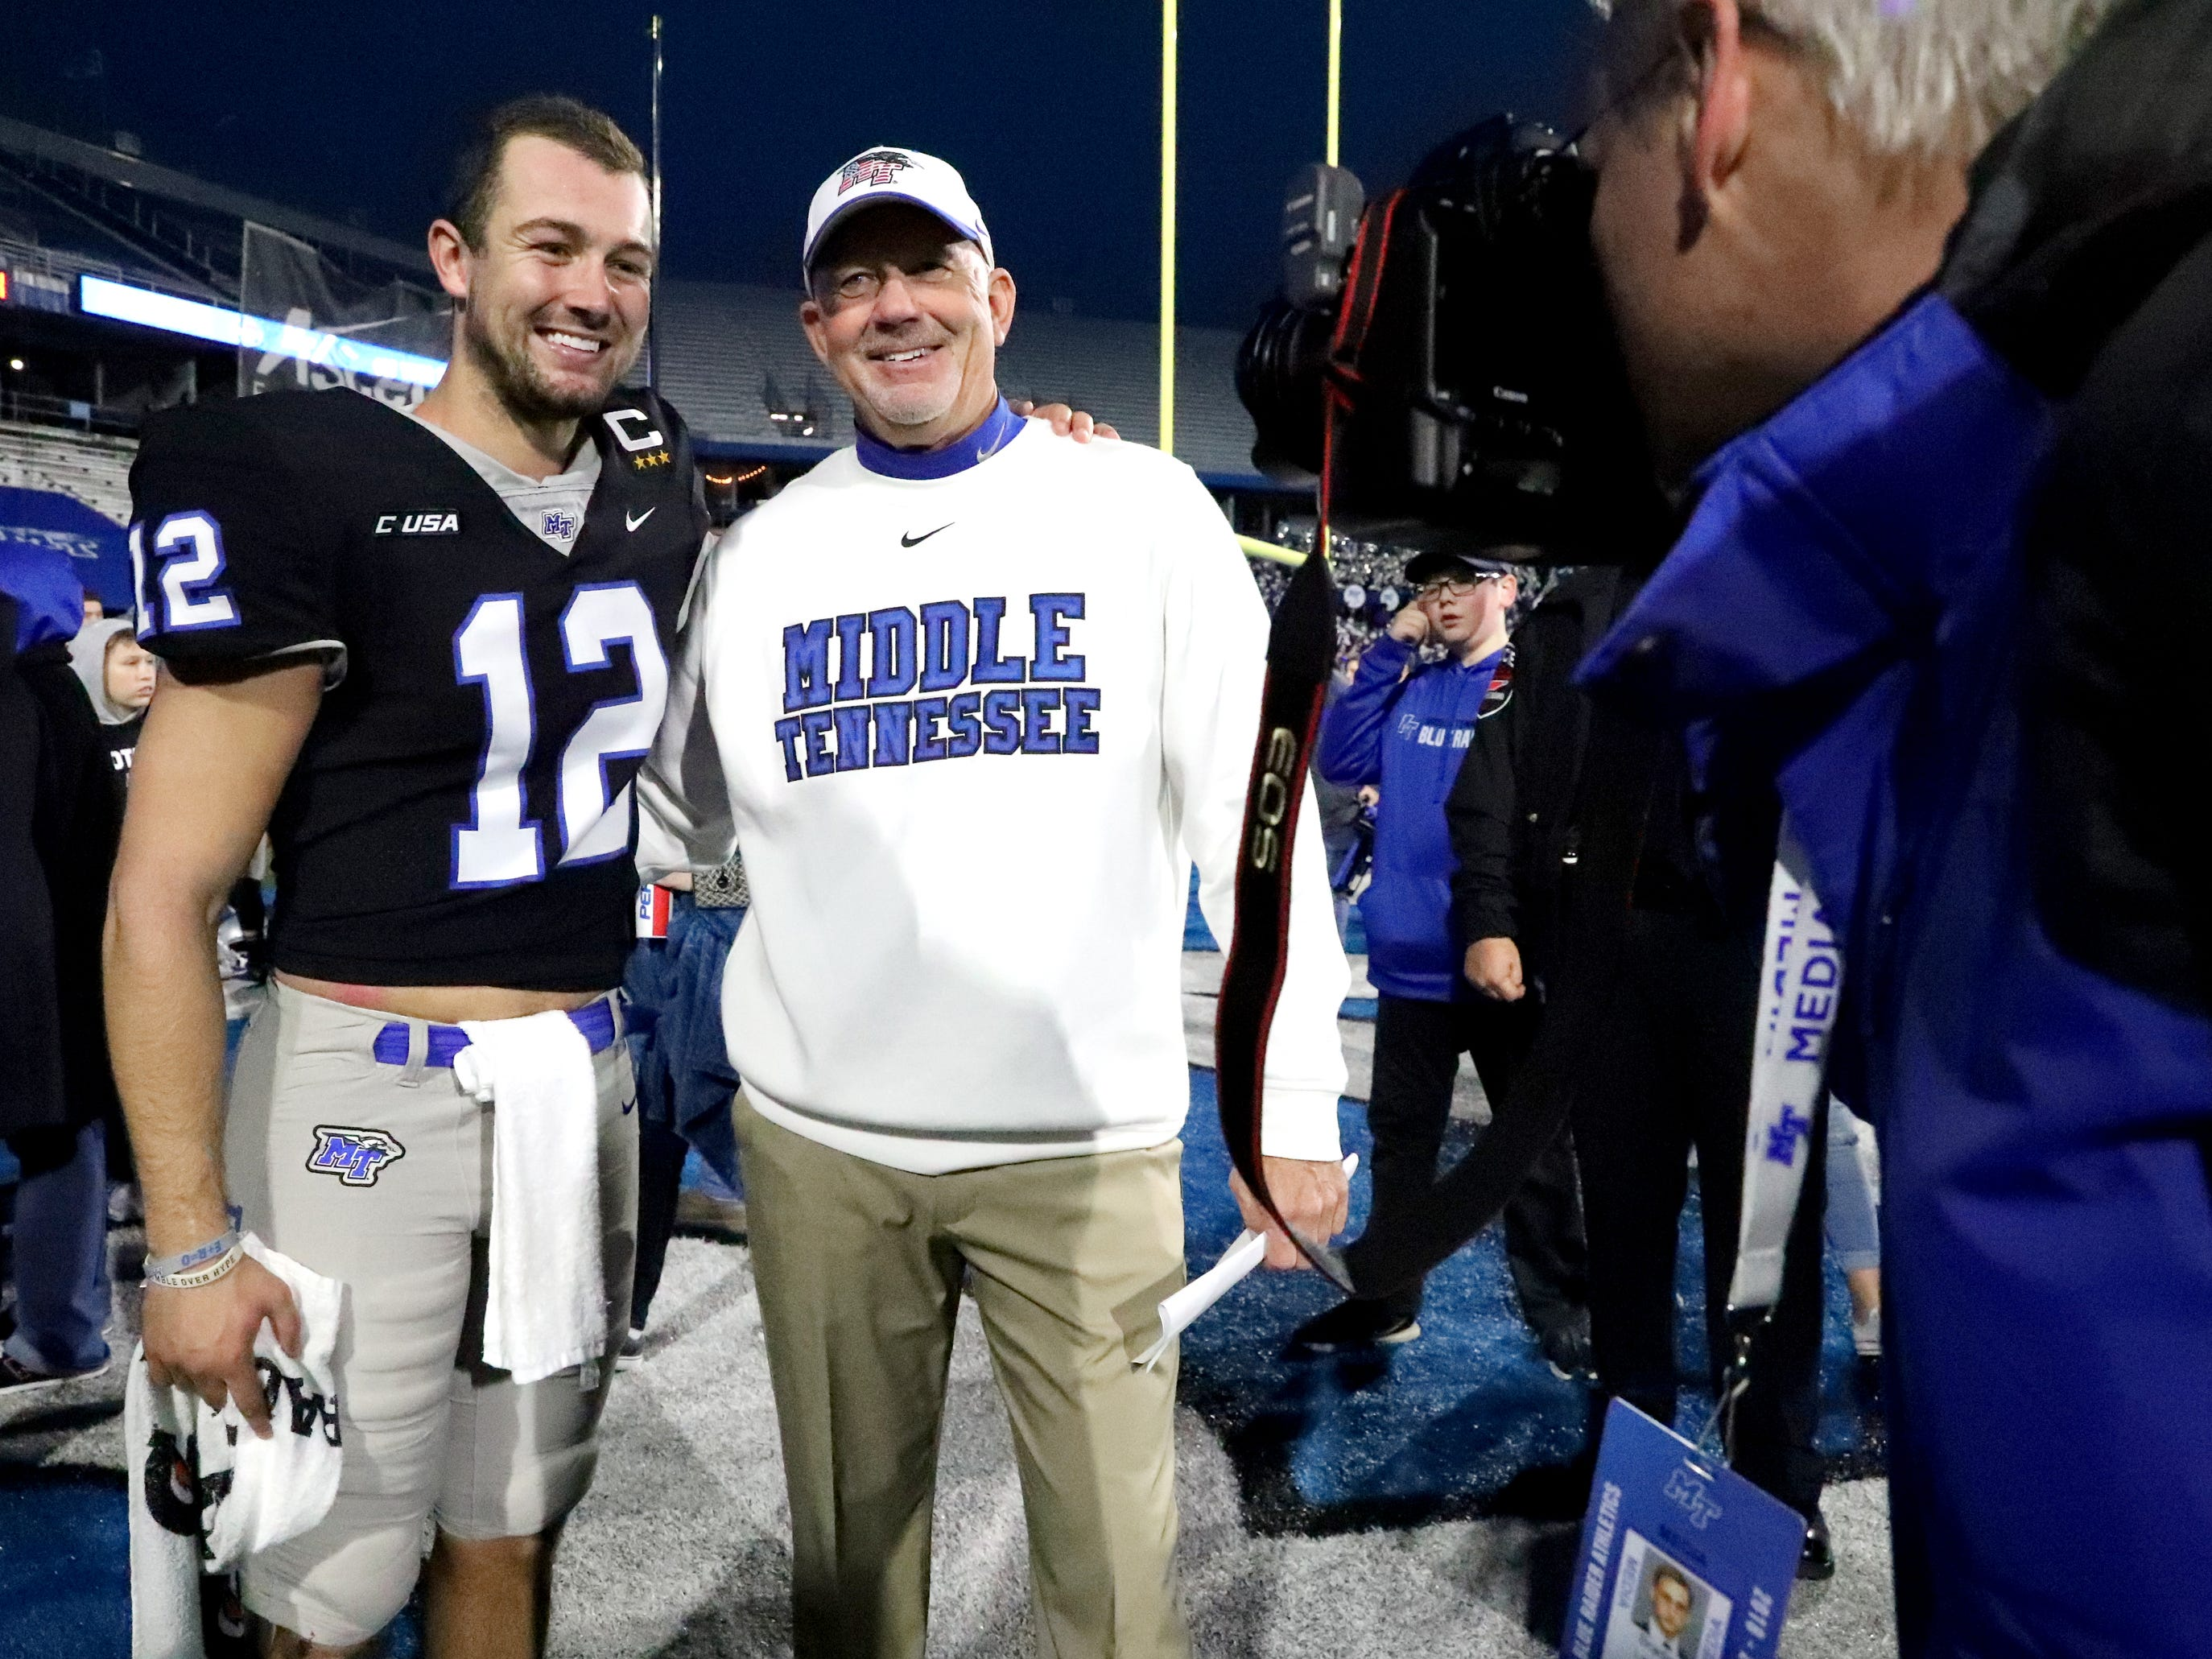 MTSU quarterback Brent Stockstill gets a picture taken with his dad head coach Rick Stockstill following MTSU's win over UAB and the announcement that MTSU is the 2018 C-USA East Division Champions and will host the Conference USA Championship next week.